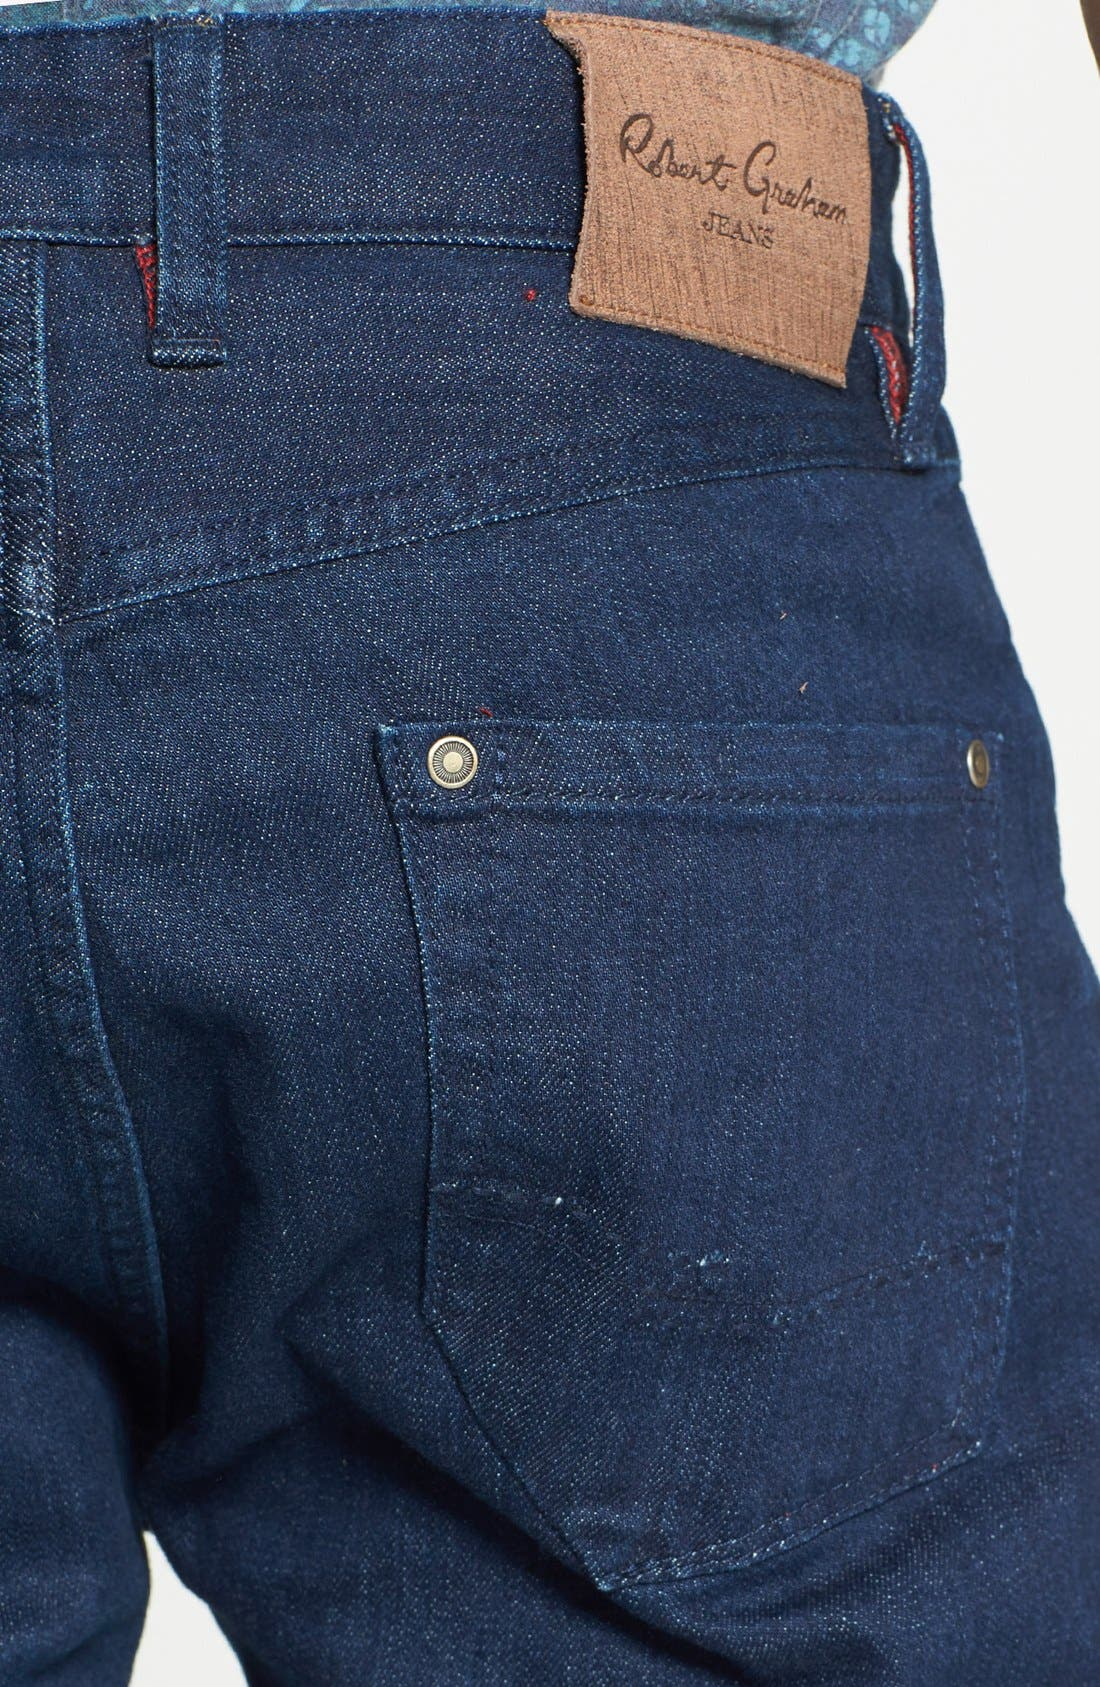 Alternate Image 3  - Robert Graham 'Mad Hatter' Classic Fit Straight Leg Jeans